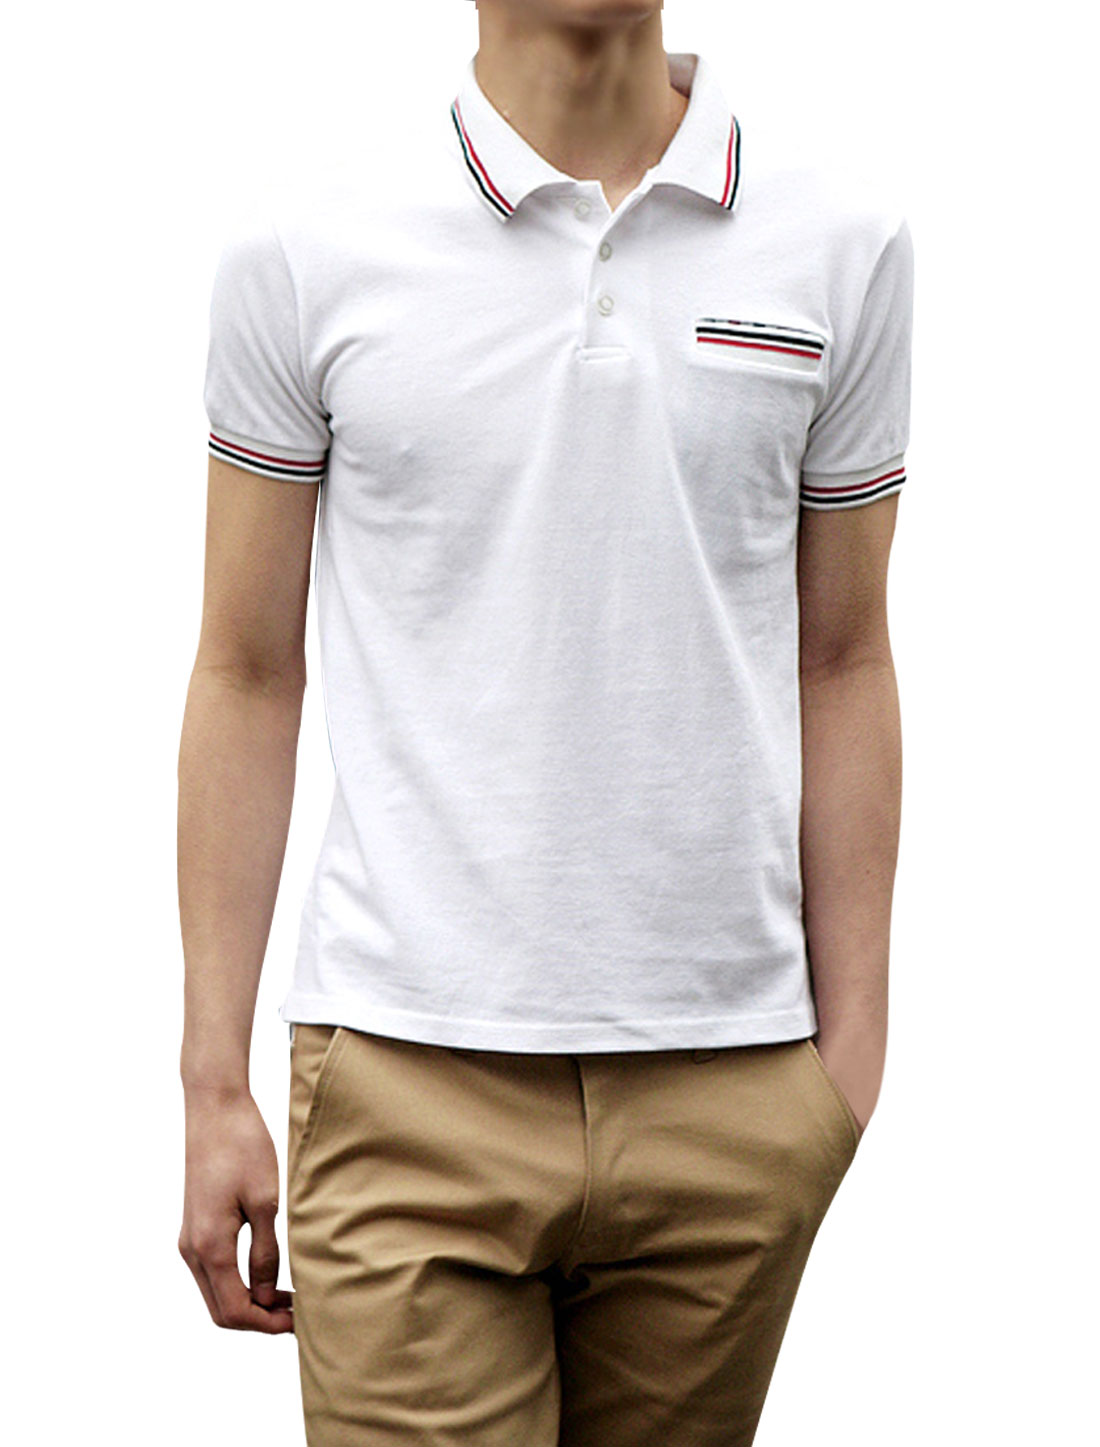 Mens Slim Fit White Short Sleeve Casual NEW Stylish Polo Shirt Tops S